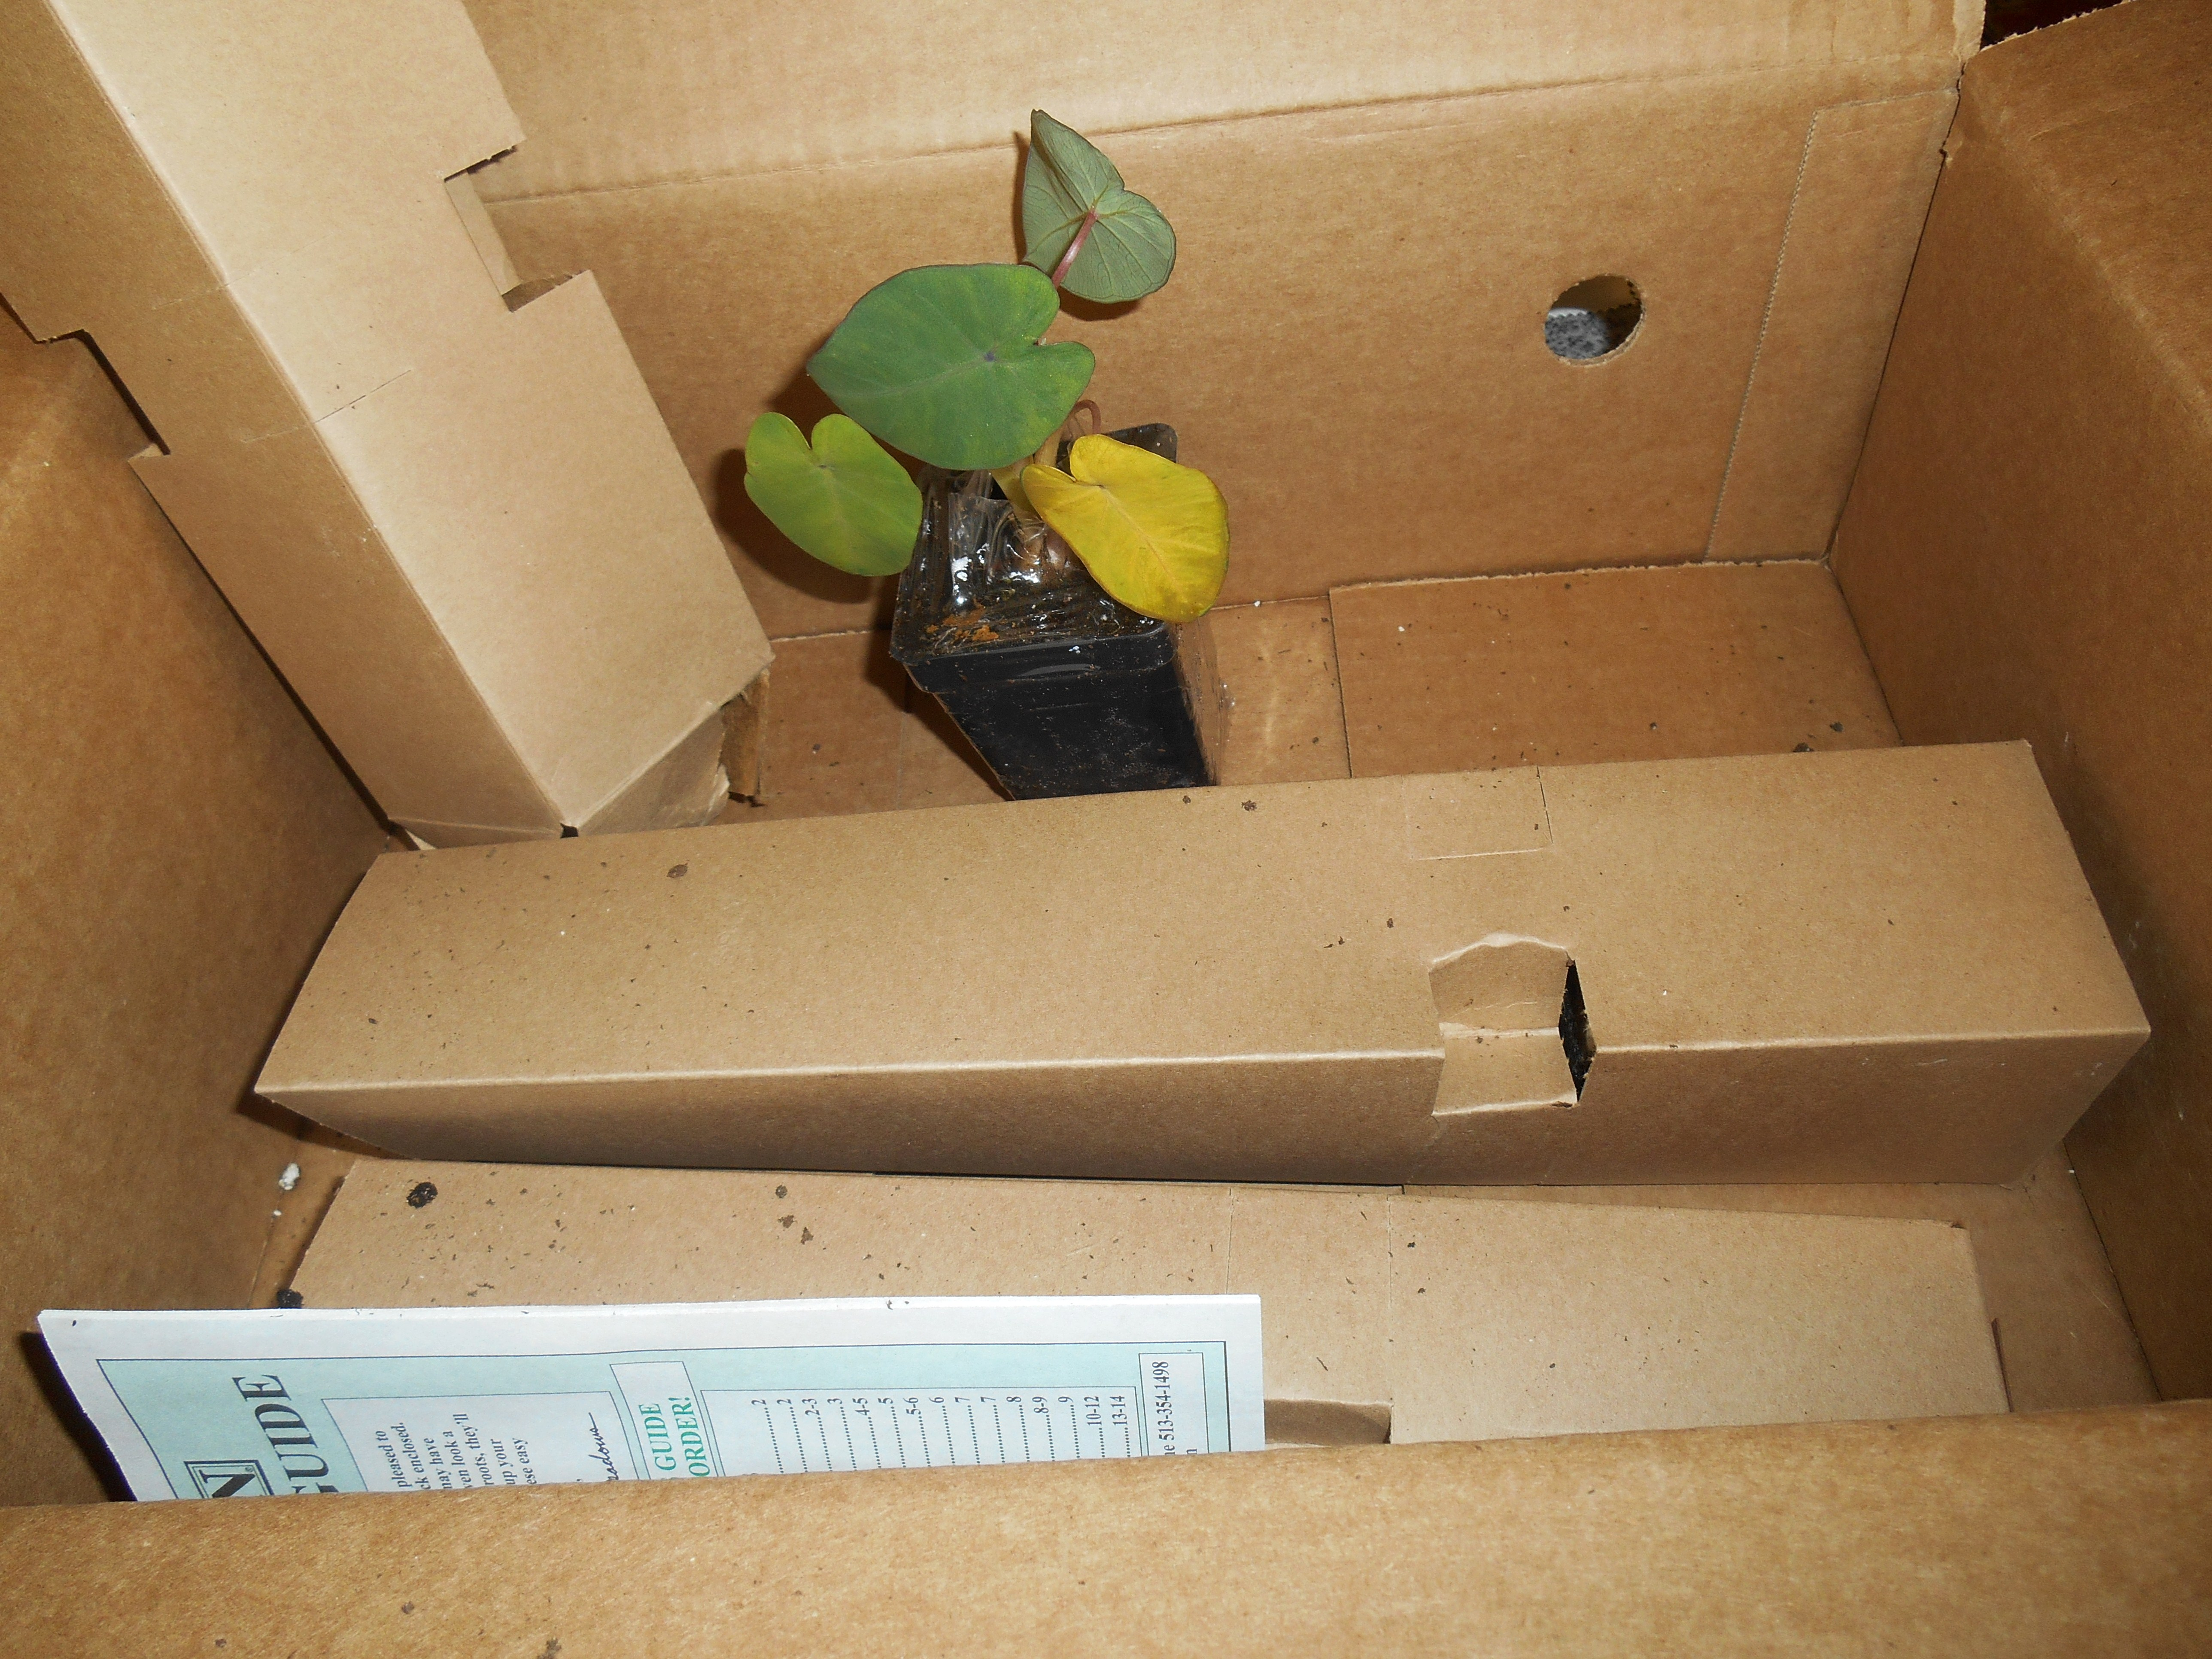 Package from Michigan Bulb Company received on Saturday, April 19, 2014 to replace the earlier shipment.